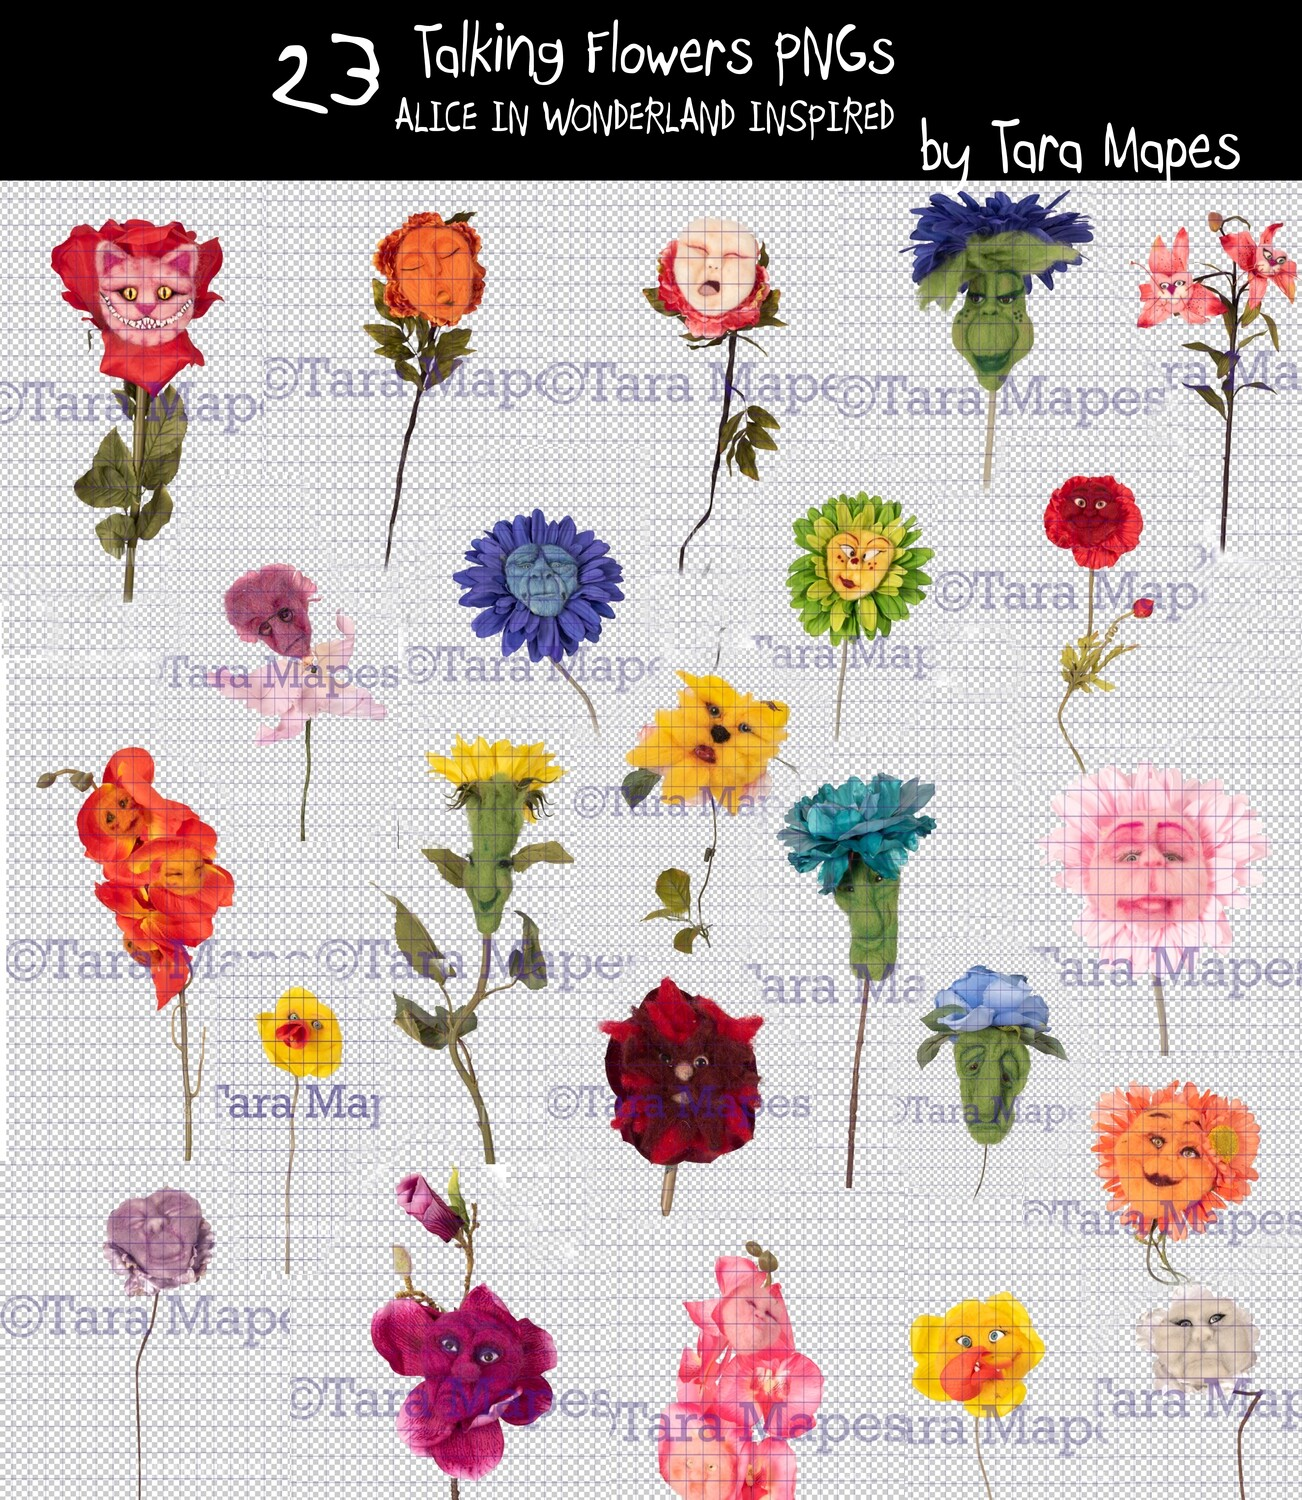 23 Talking Flowers -  Talking Flowers Bundle of 23 Overlays with Funny Faces - Alice in Wonderland Inspired PNG - Digital Overlays by Tara Mapes Enchanted Eye Creations